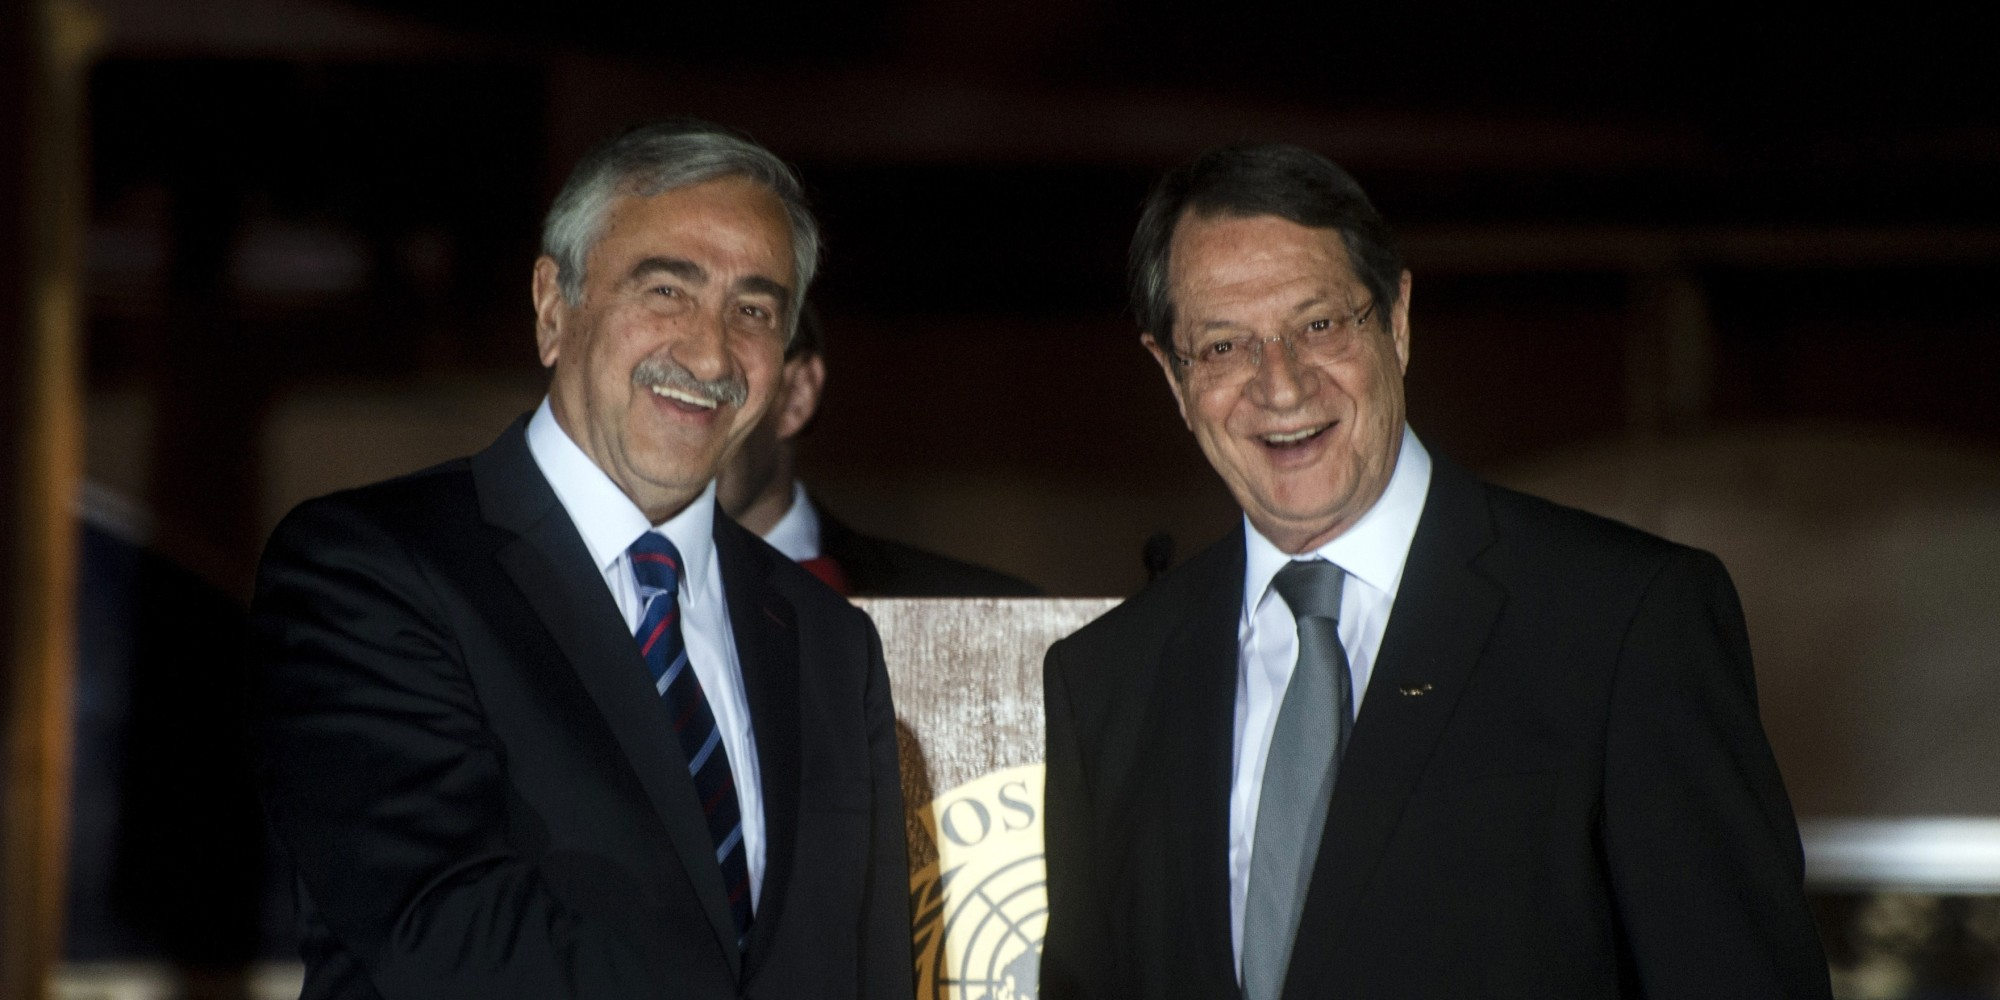 Cypriot leaders resume negotiations with property issue